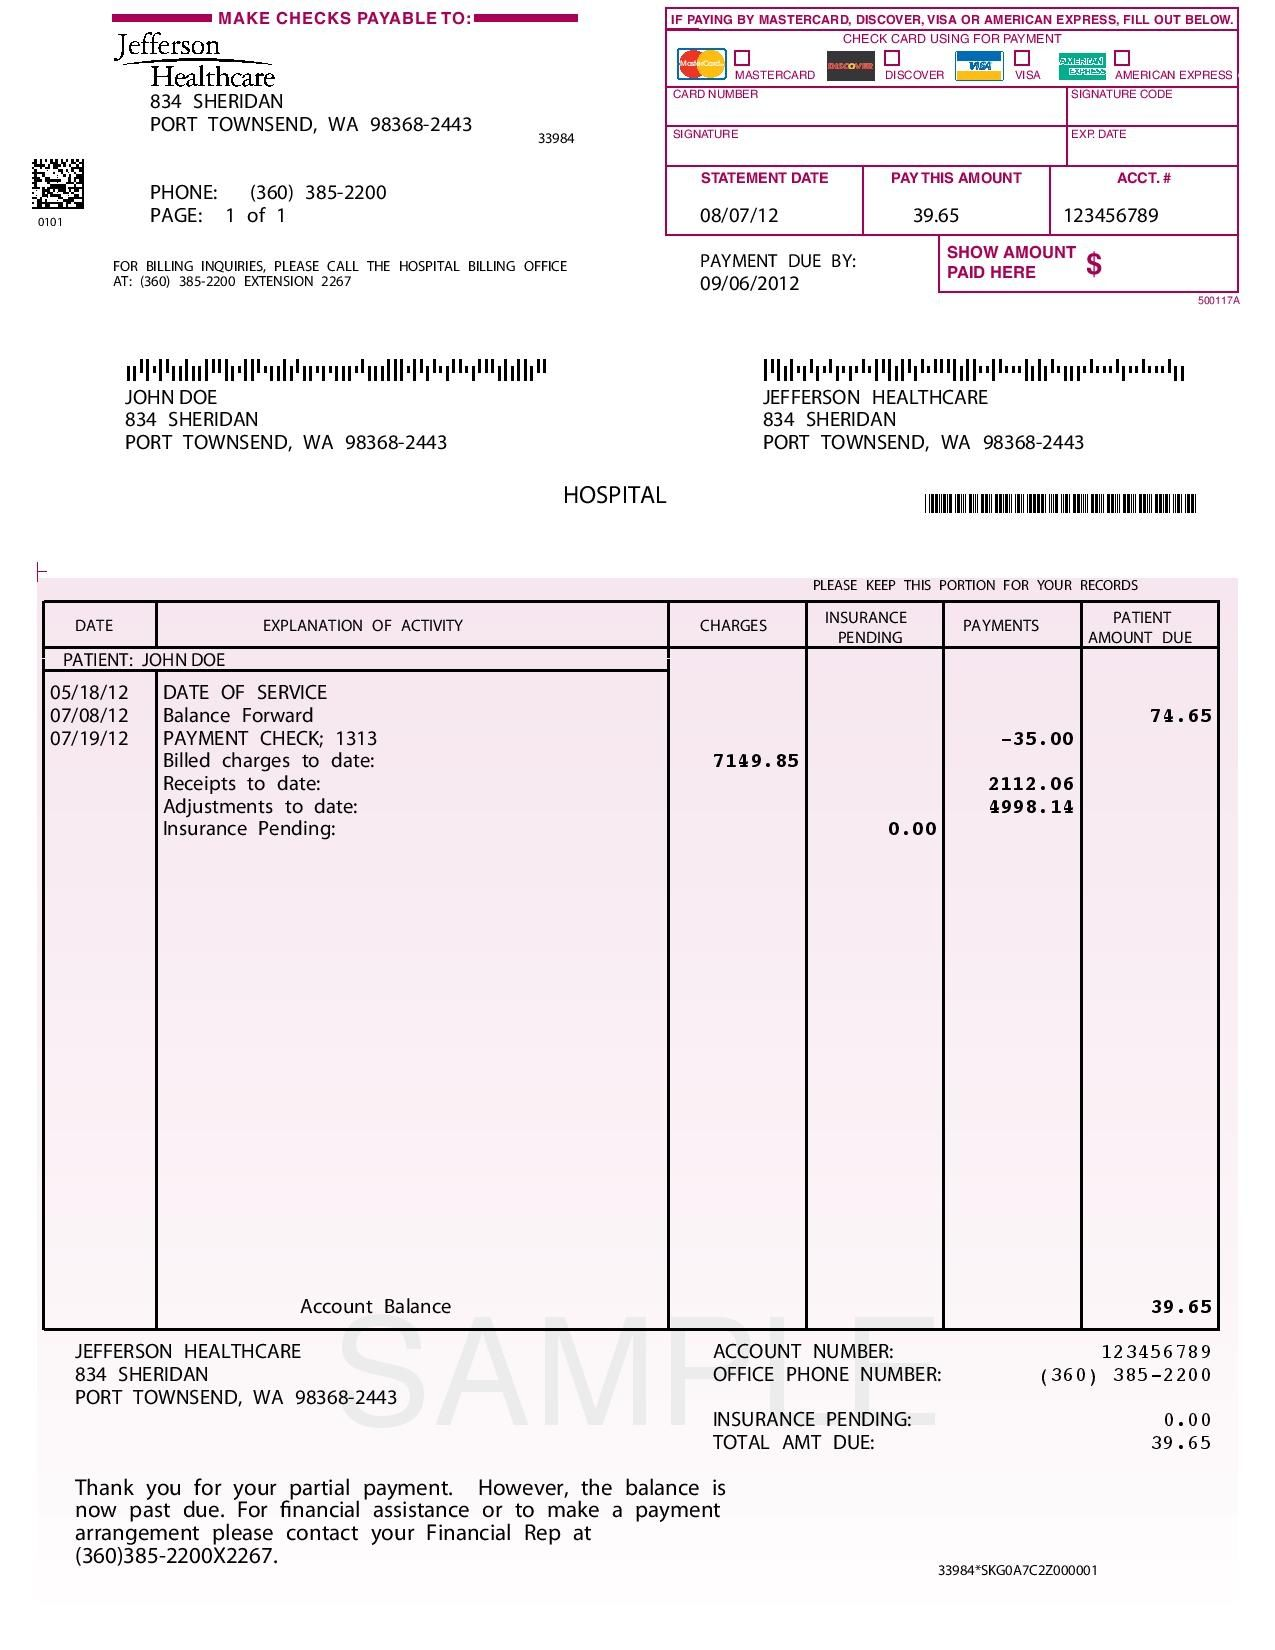 Sample Of Invoice Word  Best Images Of Sample Of Invoice For Payment Sample Invoice  Professional Receipts Pdf with Canada Post Receipt Pdf  Best Images Of Sample Of Invoice For Payment Sample Invoice Payment  Terms On An Invoice Free Editable Invoice Template Pdf Excel